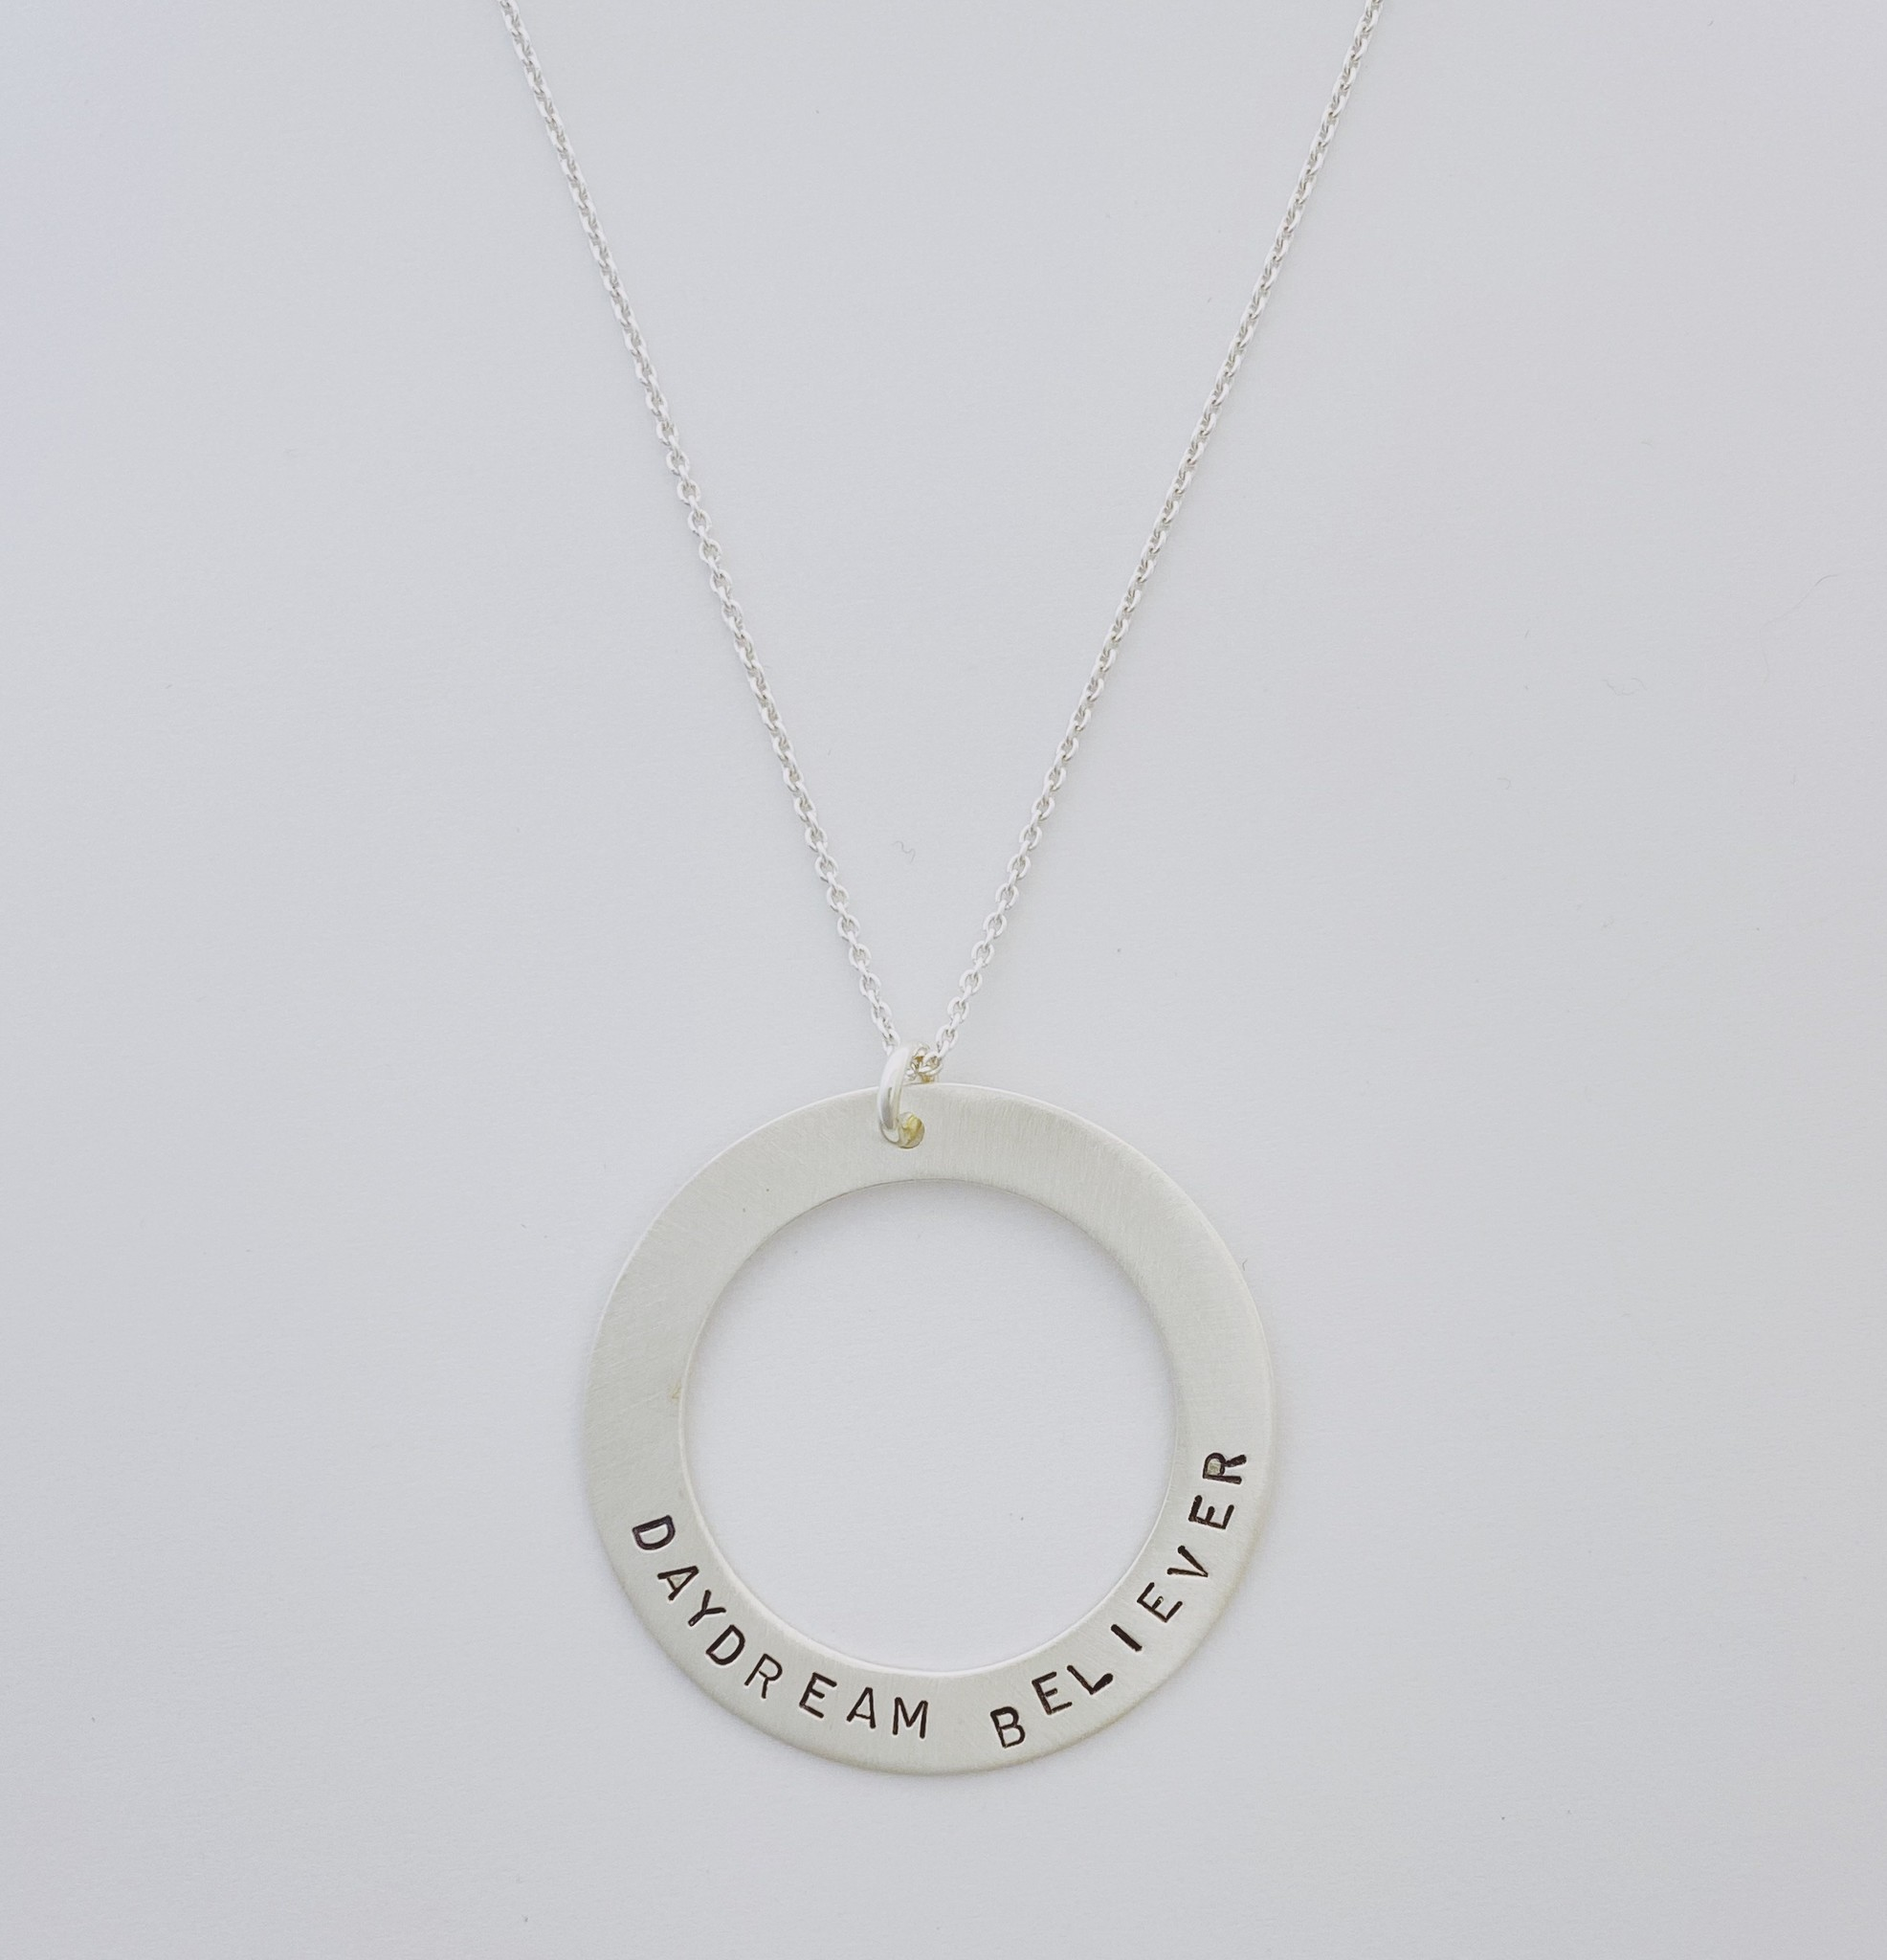 Andrea Waines Slim Halo Necklace- Daydream Believer